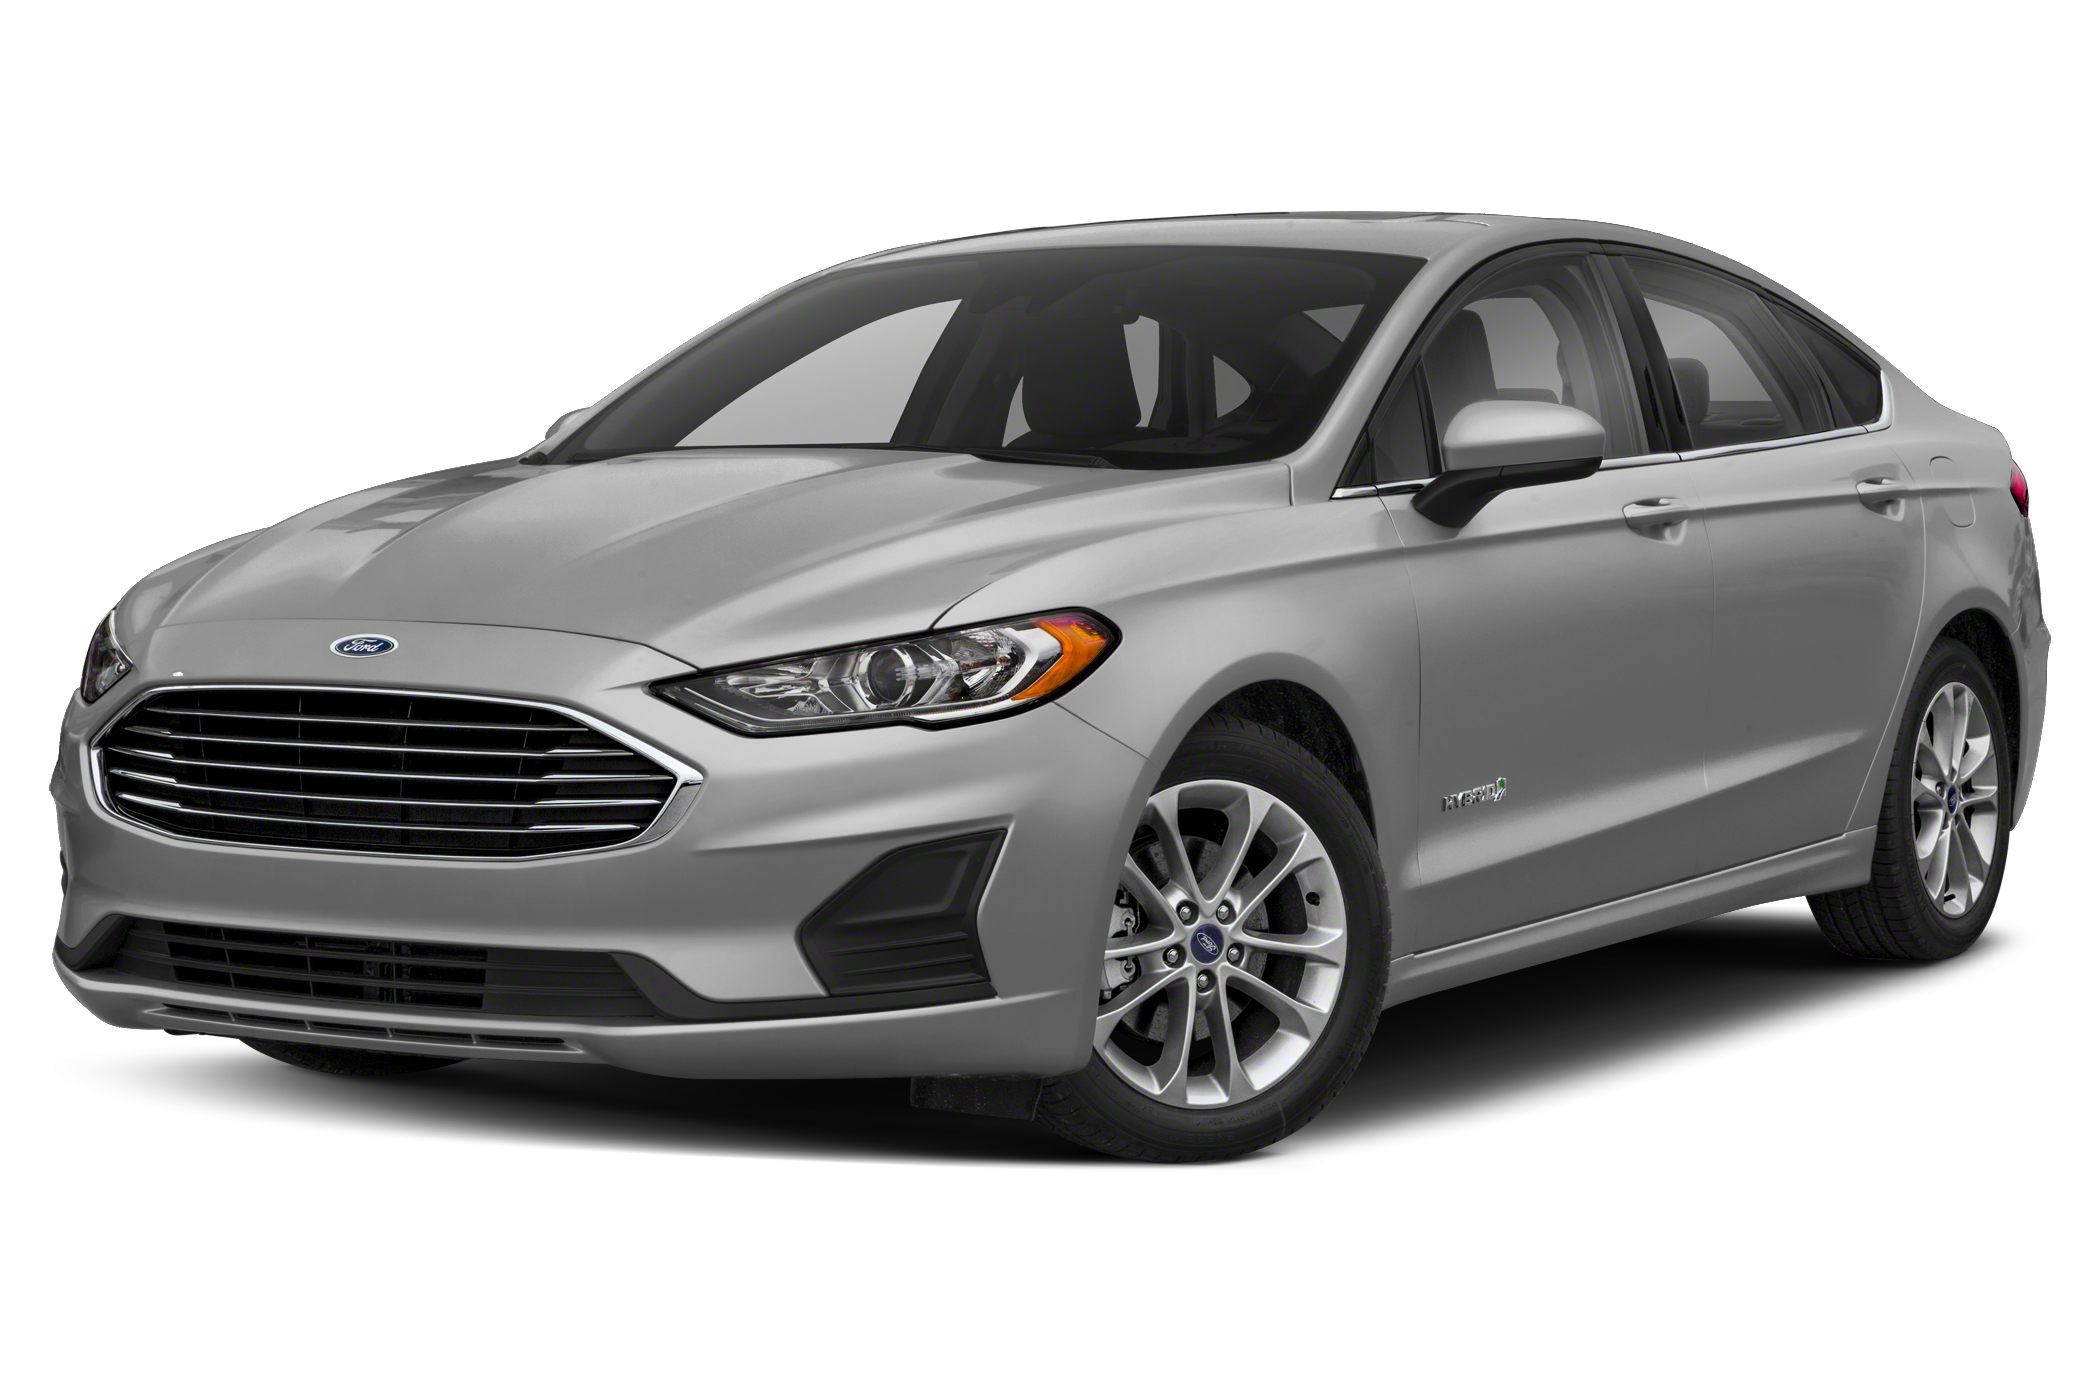 2019 Ford Fusion Hybrid vs Other Vehicles Overview